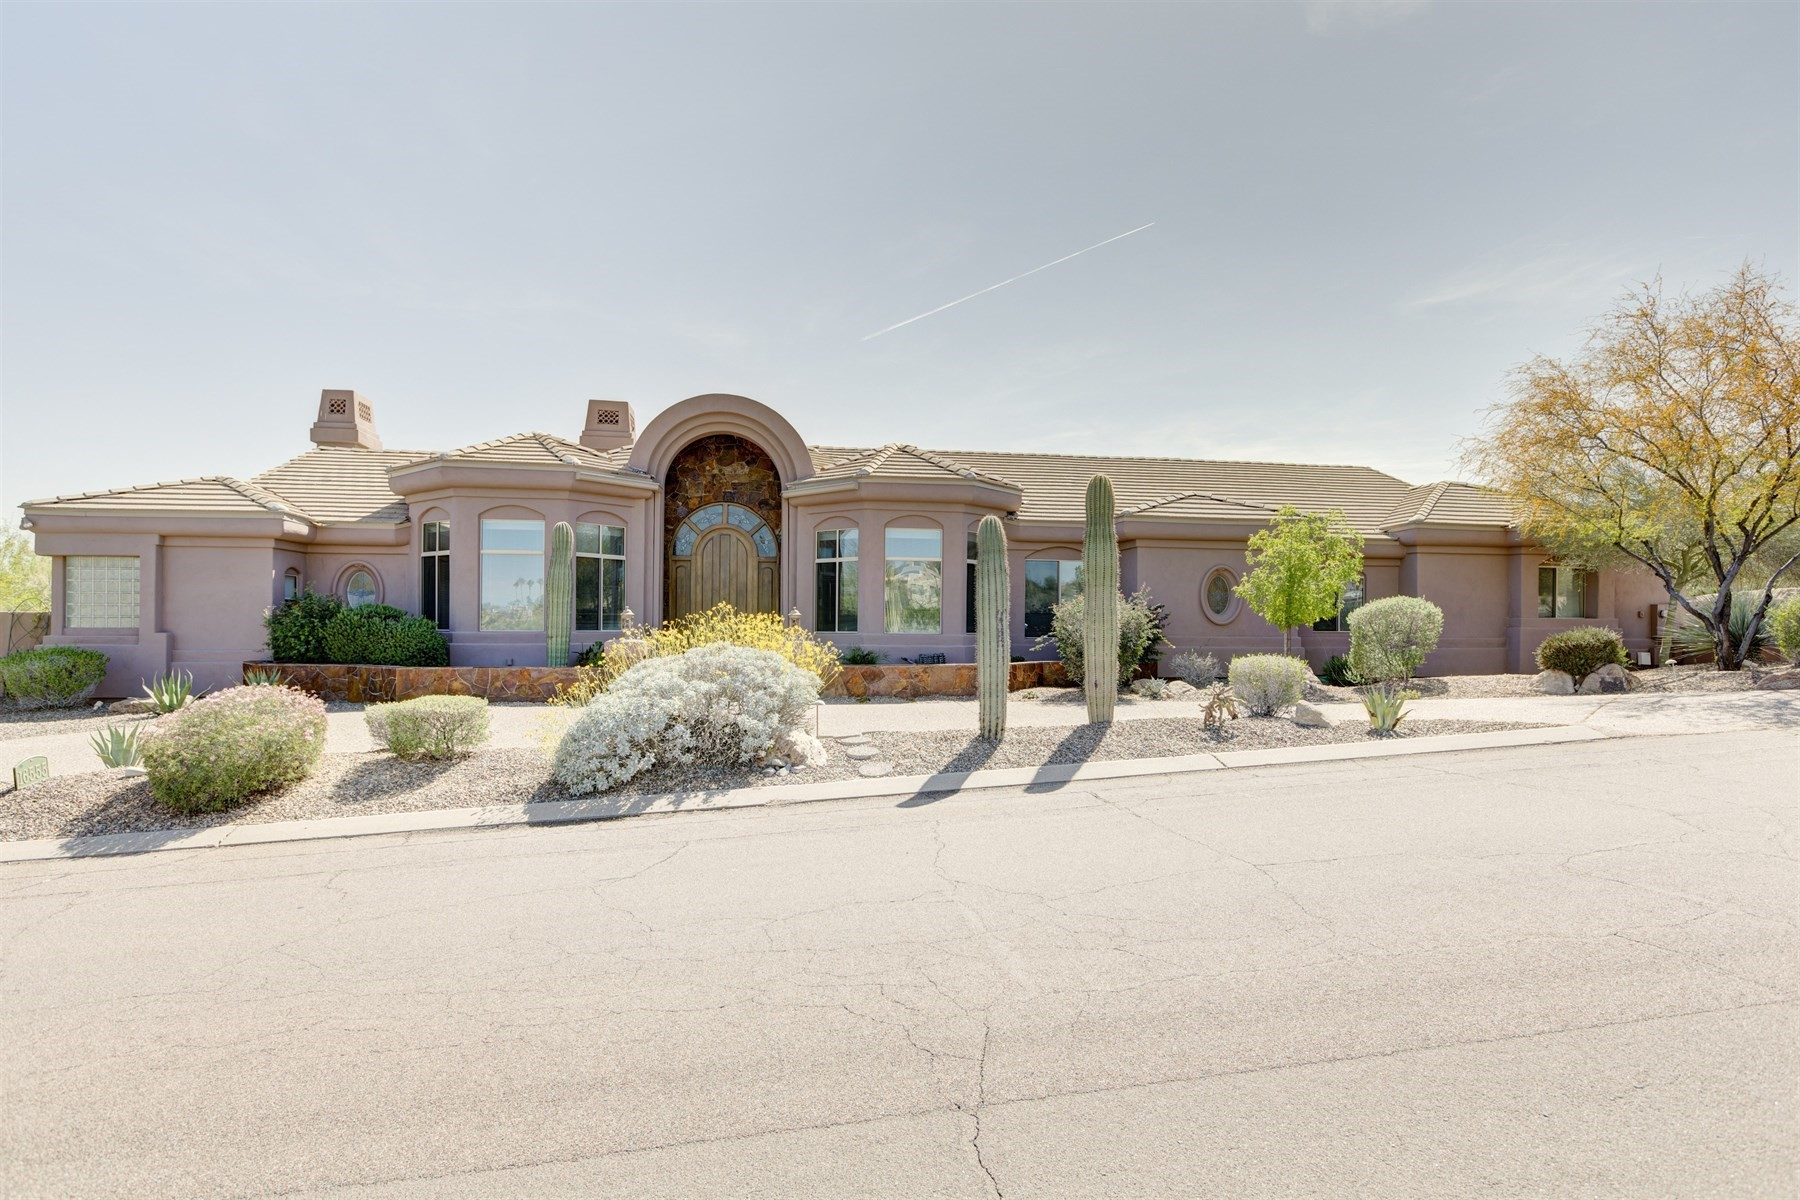 Single Family Home for Sale at Exceptional single level custom home backing the 16th hole of Desert Canyon's GC 16555 E Jacklin Dr Fountain Hills, Arizona, 85268 United States